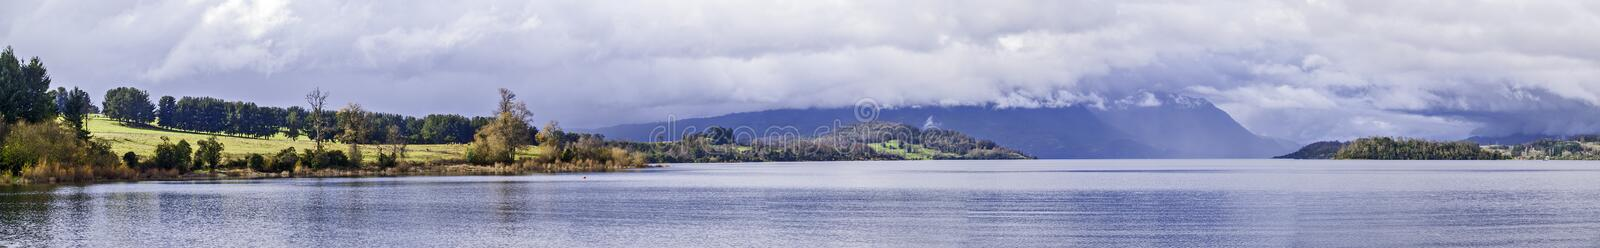 Panorama de lac photo stock